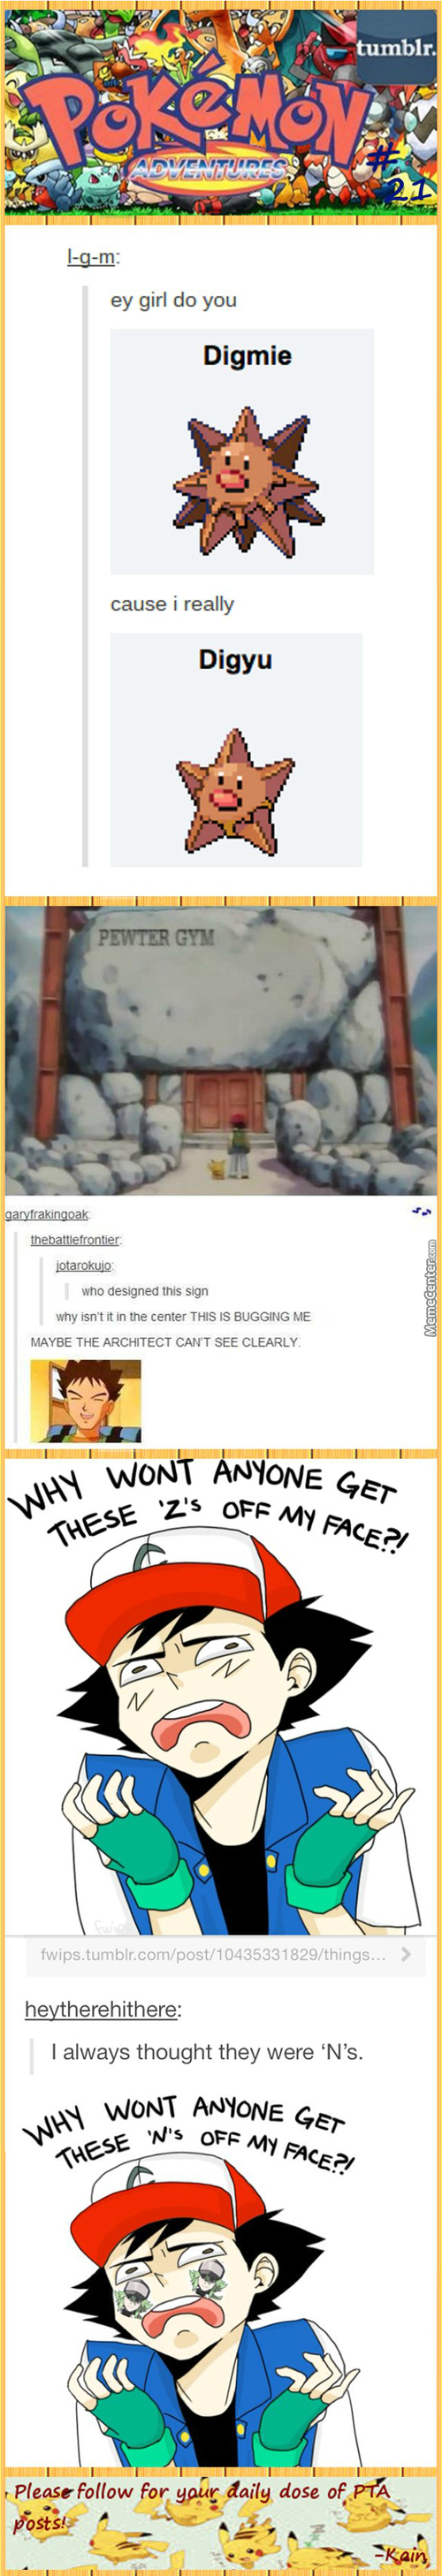 Pokemon Tumblr Adventures #21